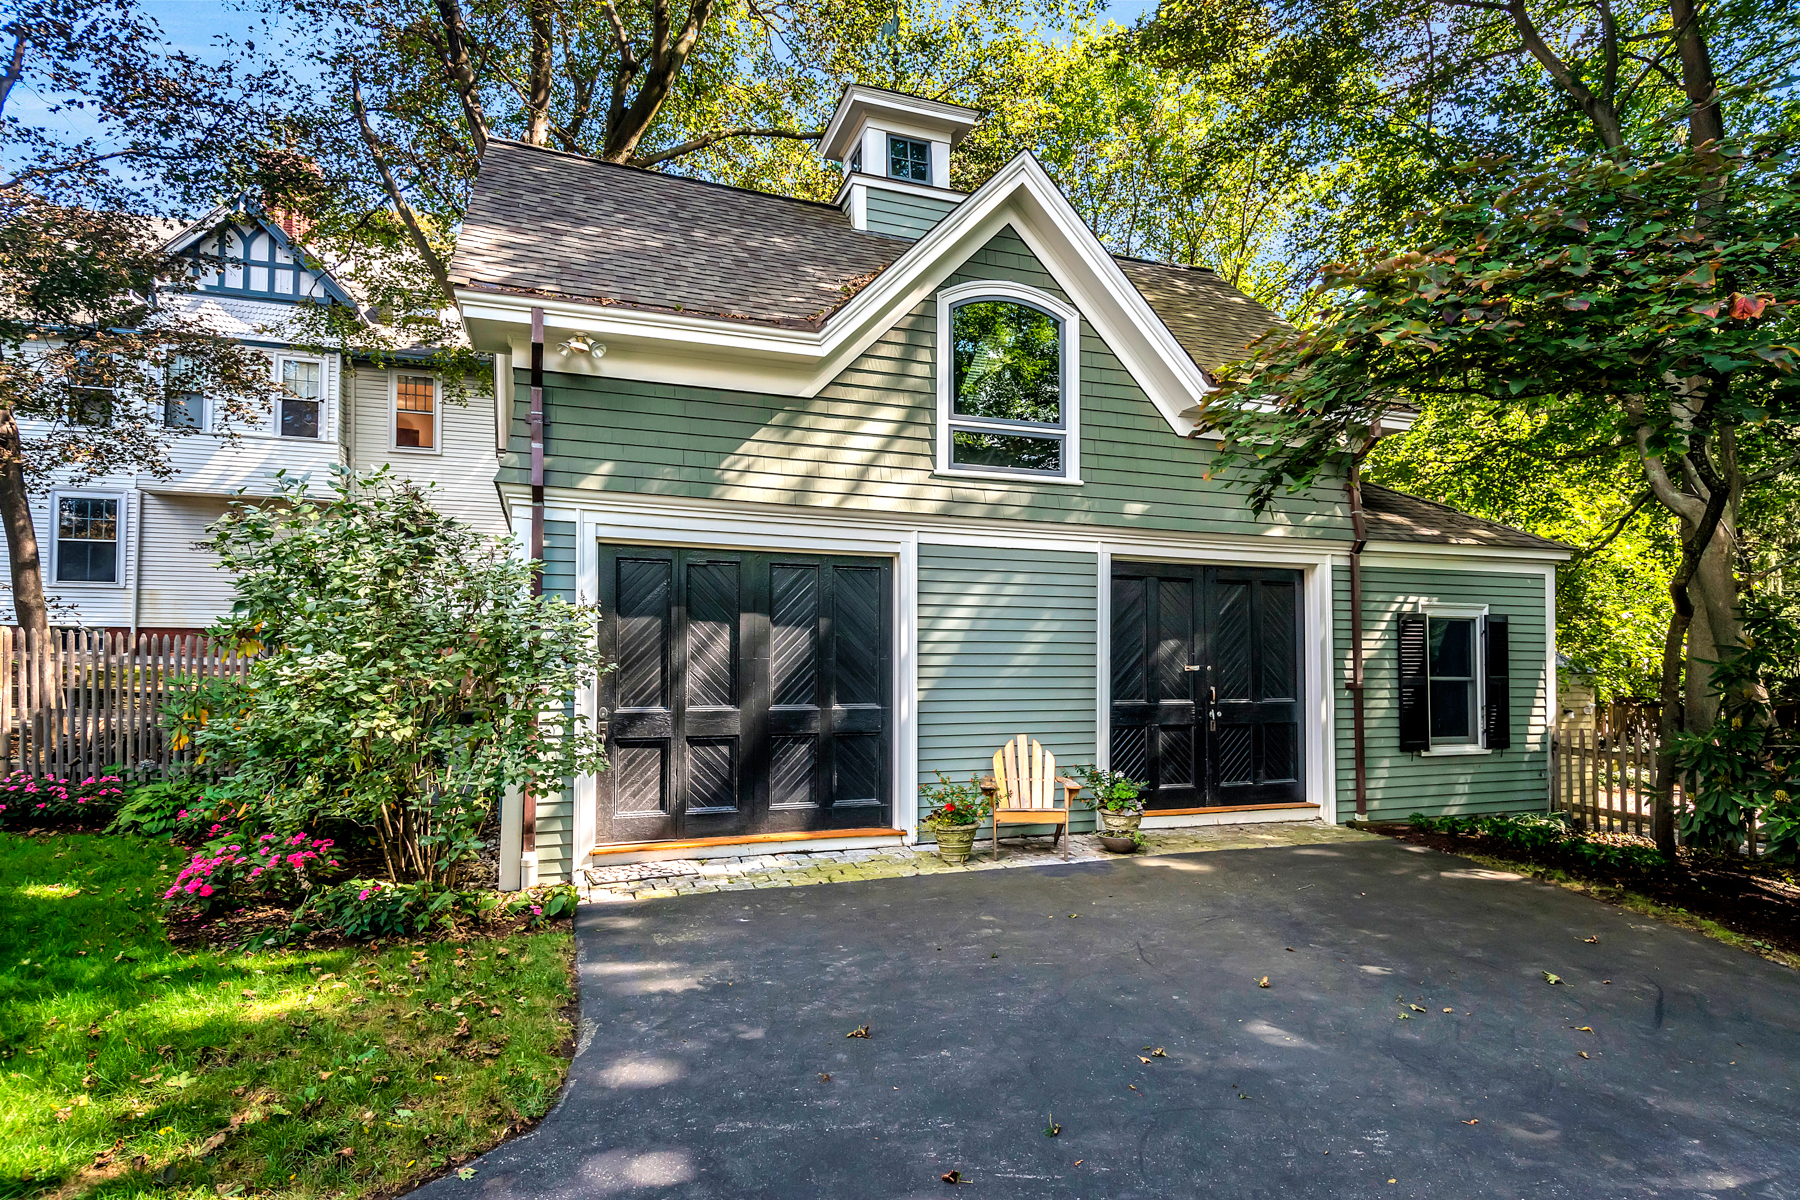 Additional photo for property listing at Stunning Winchester Colonial with Carriage House 5 Winthrop St Winchester, Massachusetts 01890 United States